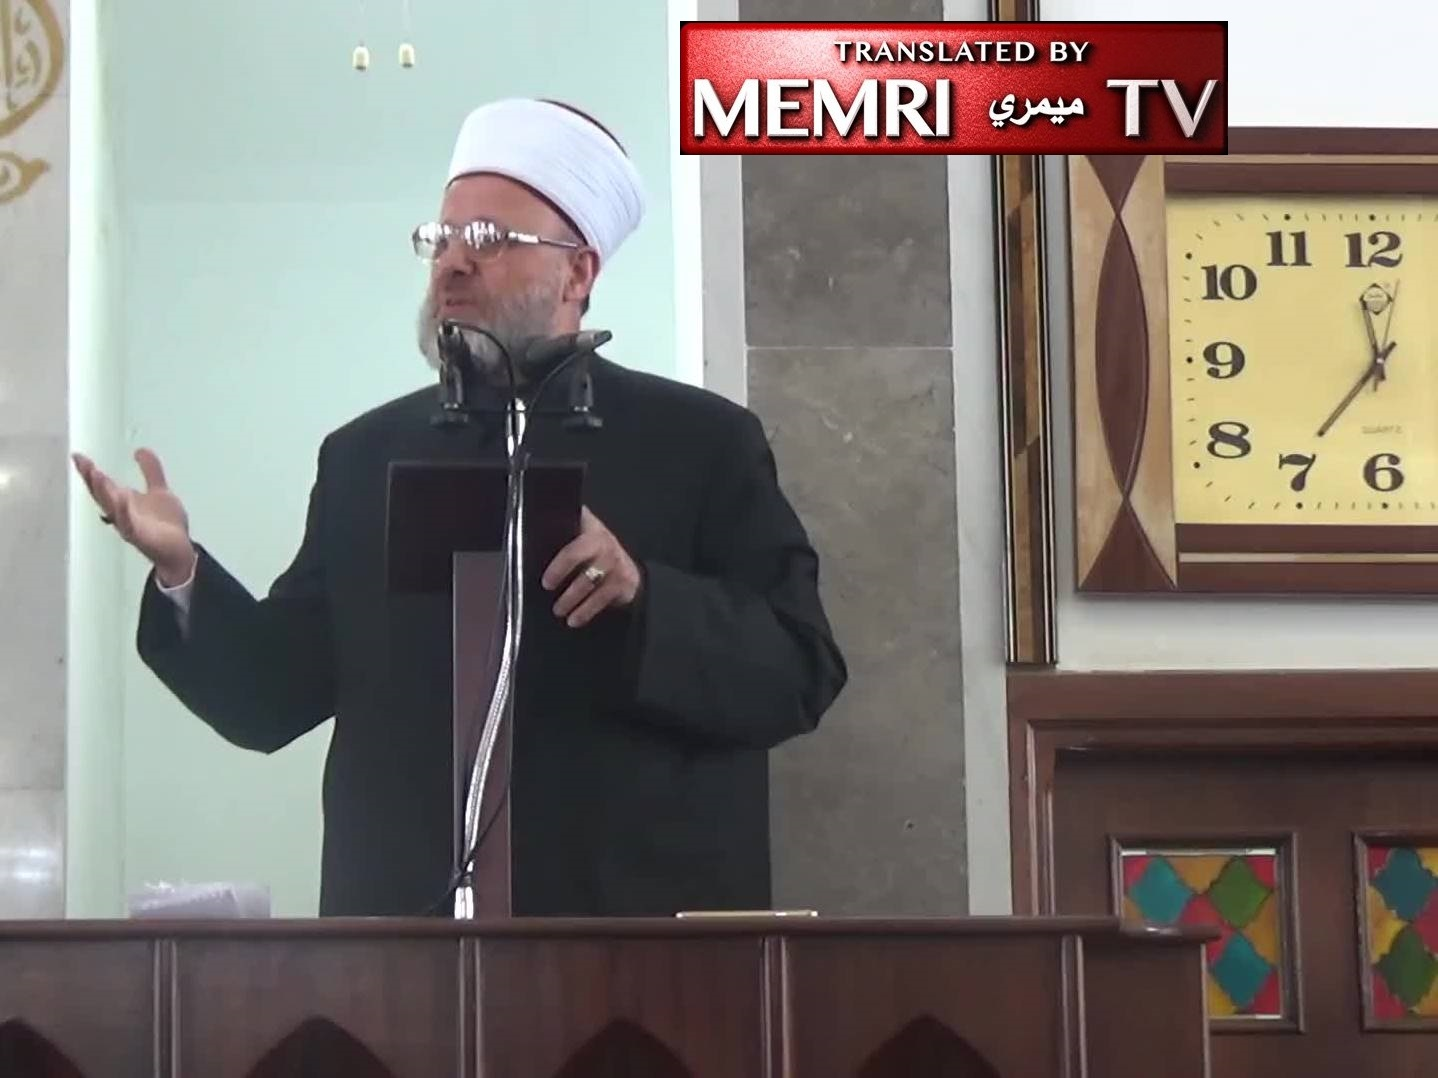 Amman Friday Sermon by Ahmad Shahrouri: Only the Sword Will Resolve the Struggle with the Zionists